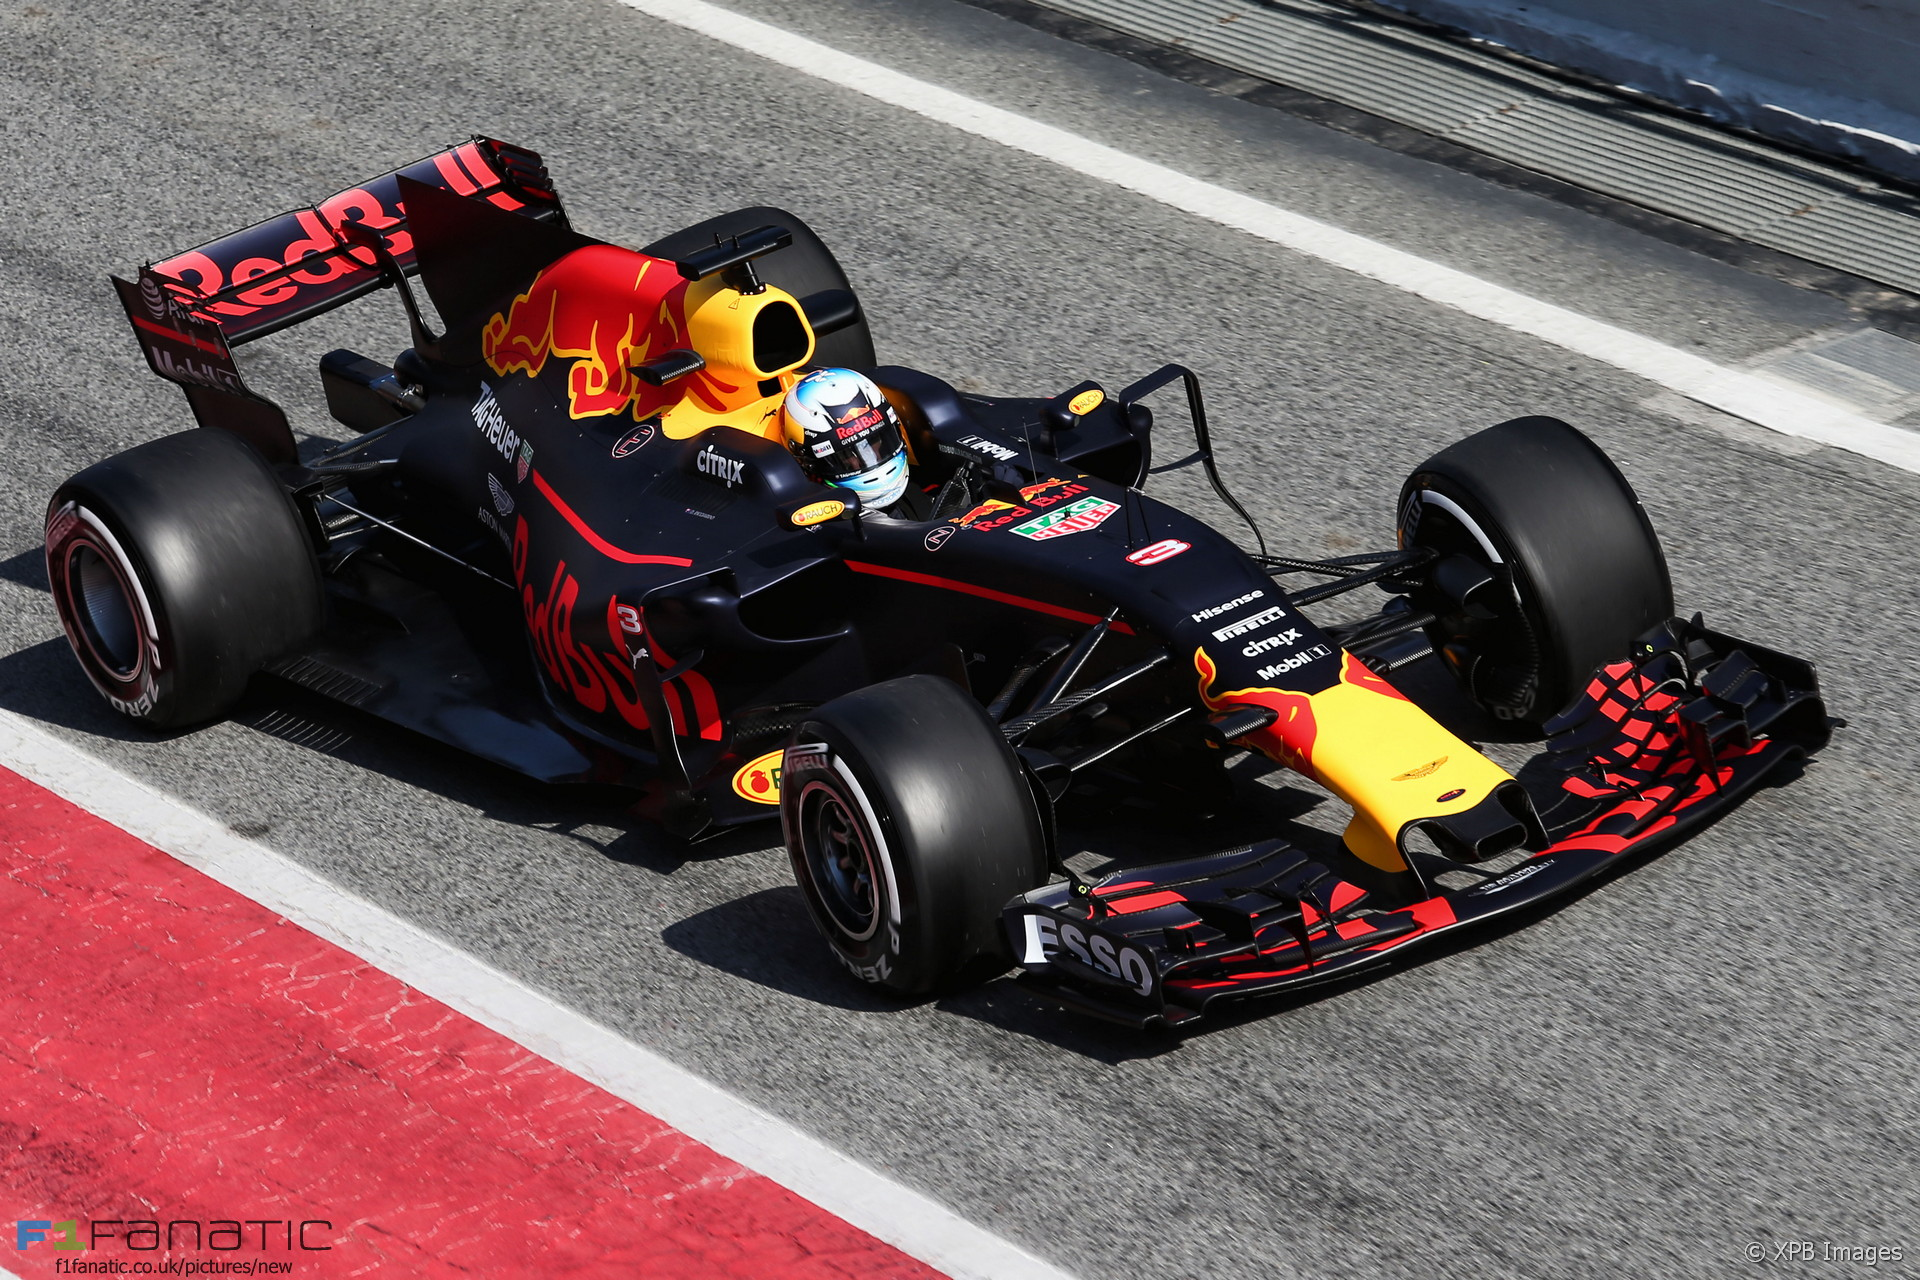 Rb13 Technical Analysis Of Red Bull S New F1 Car 183 F1 Fanatic